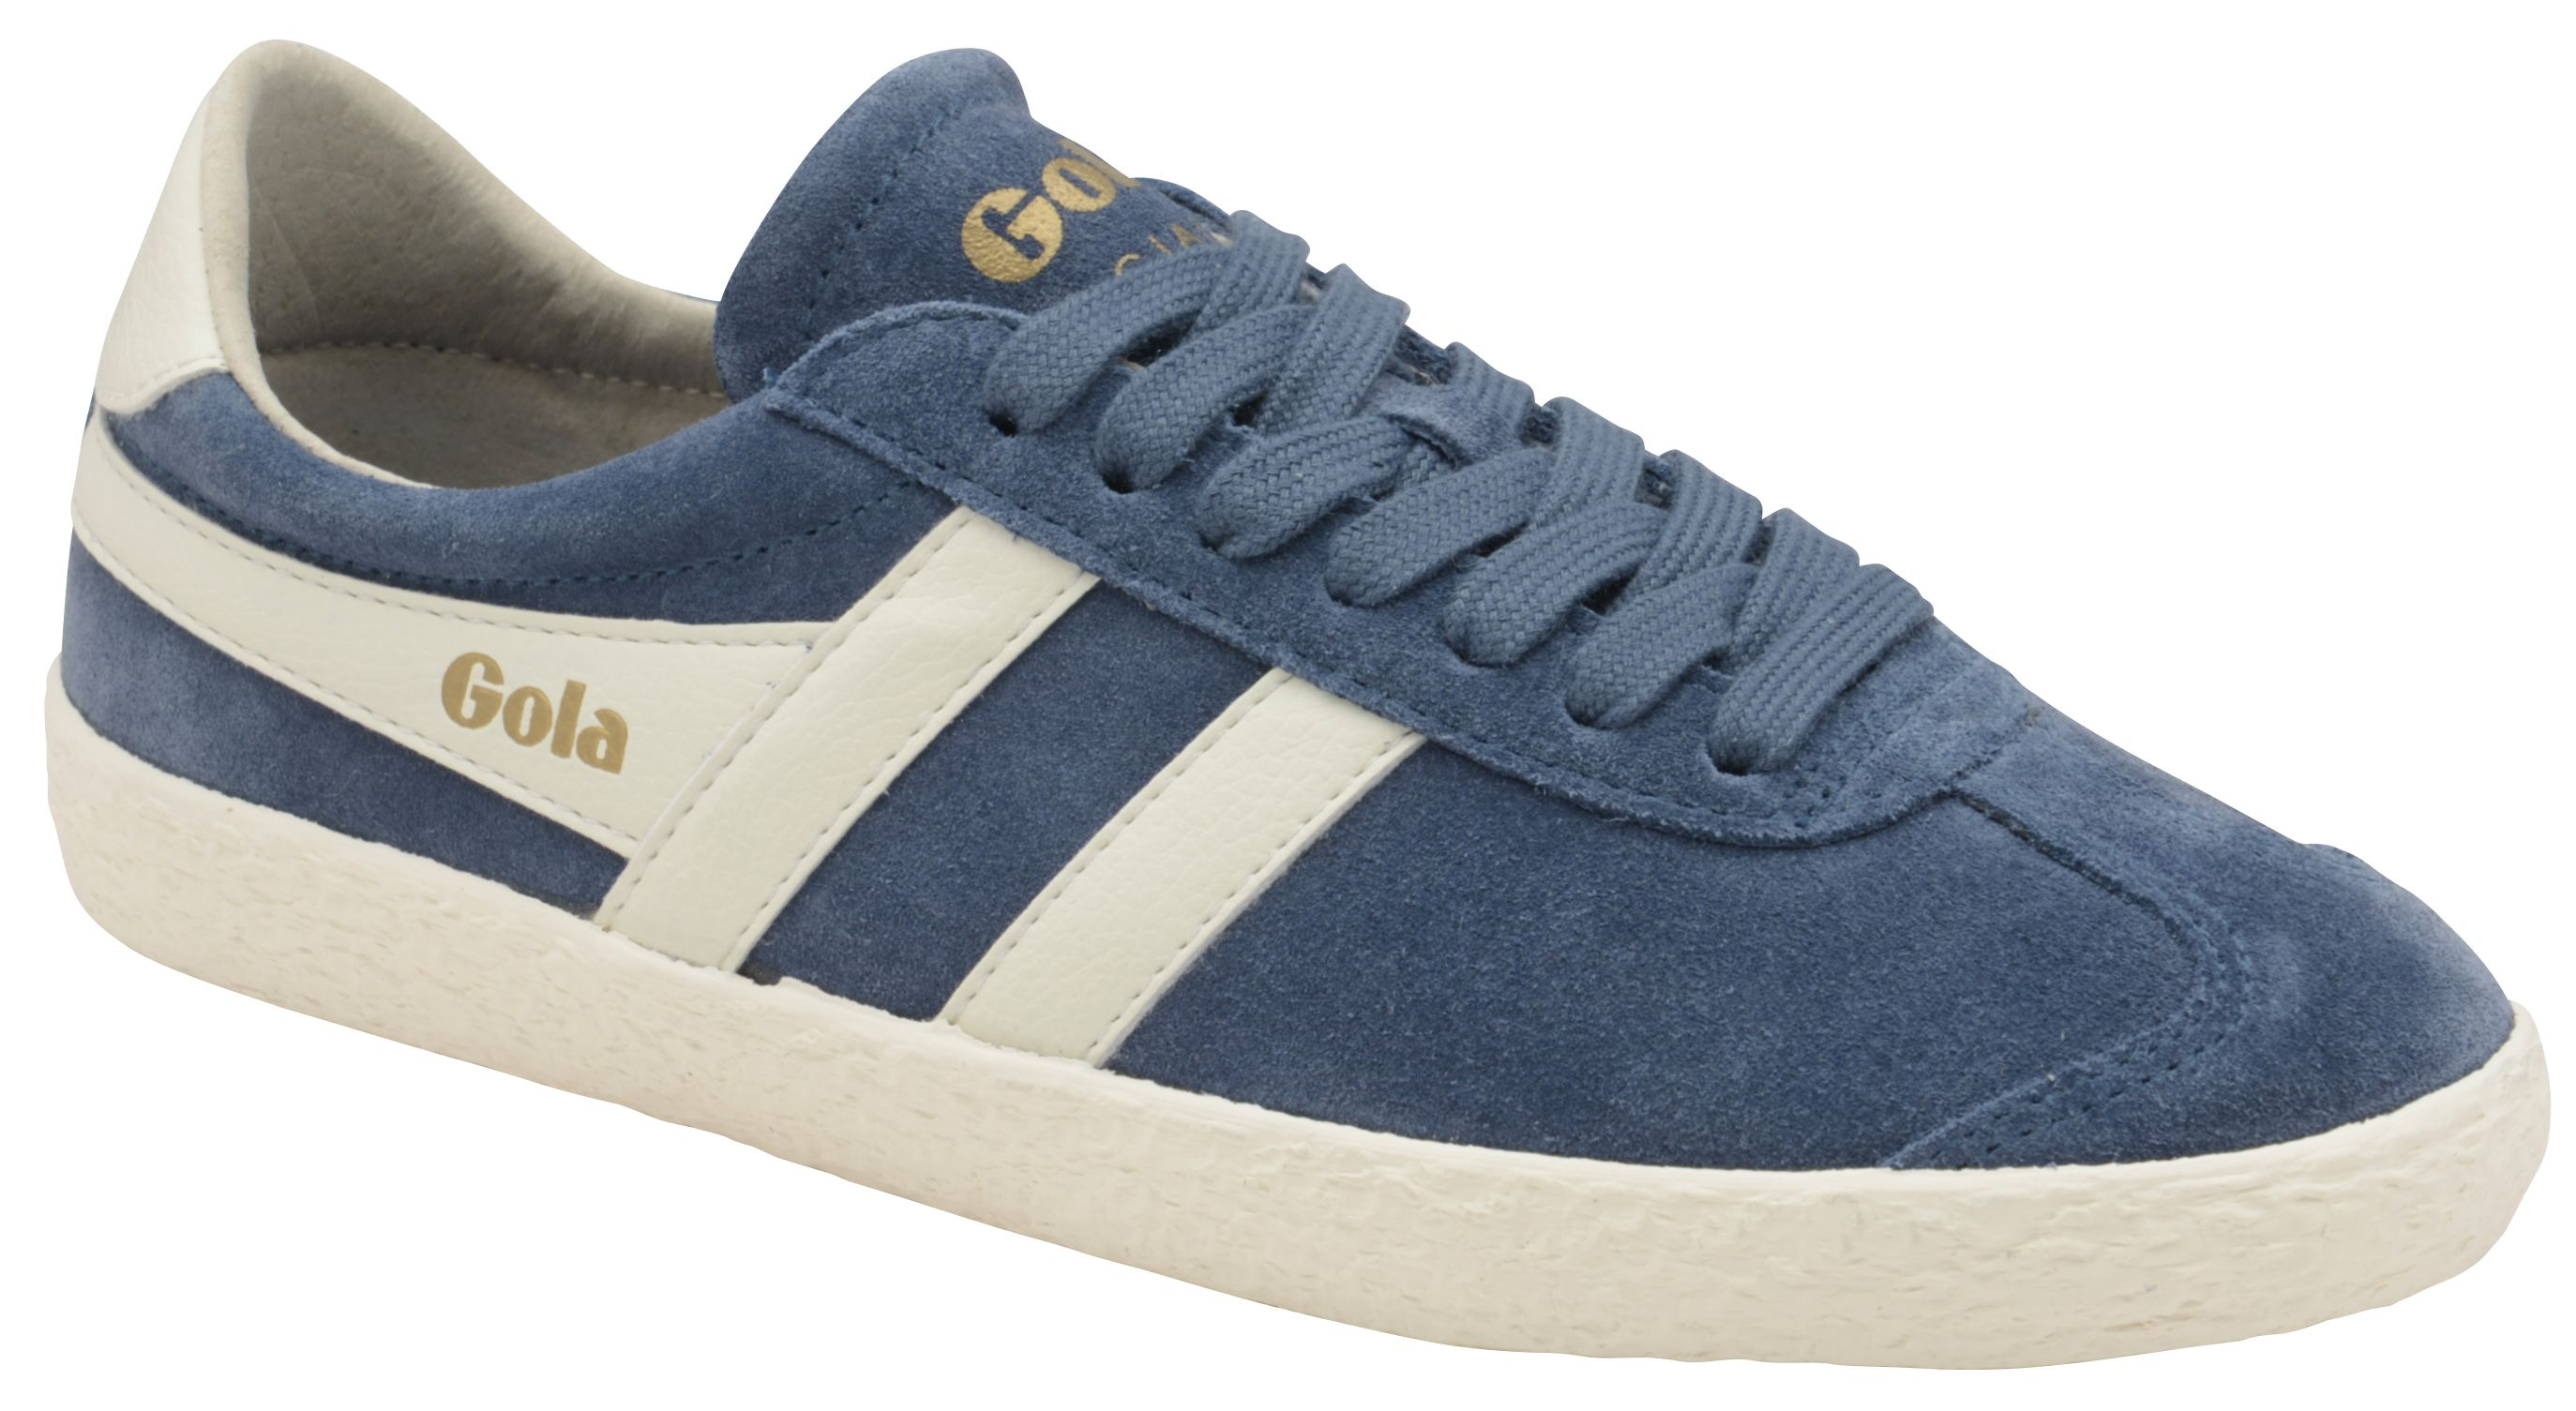 Gola Specialist Lace Up Trainers, Baltic Blue